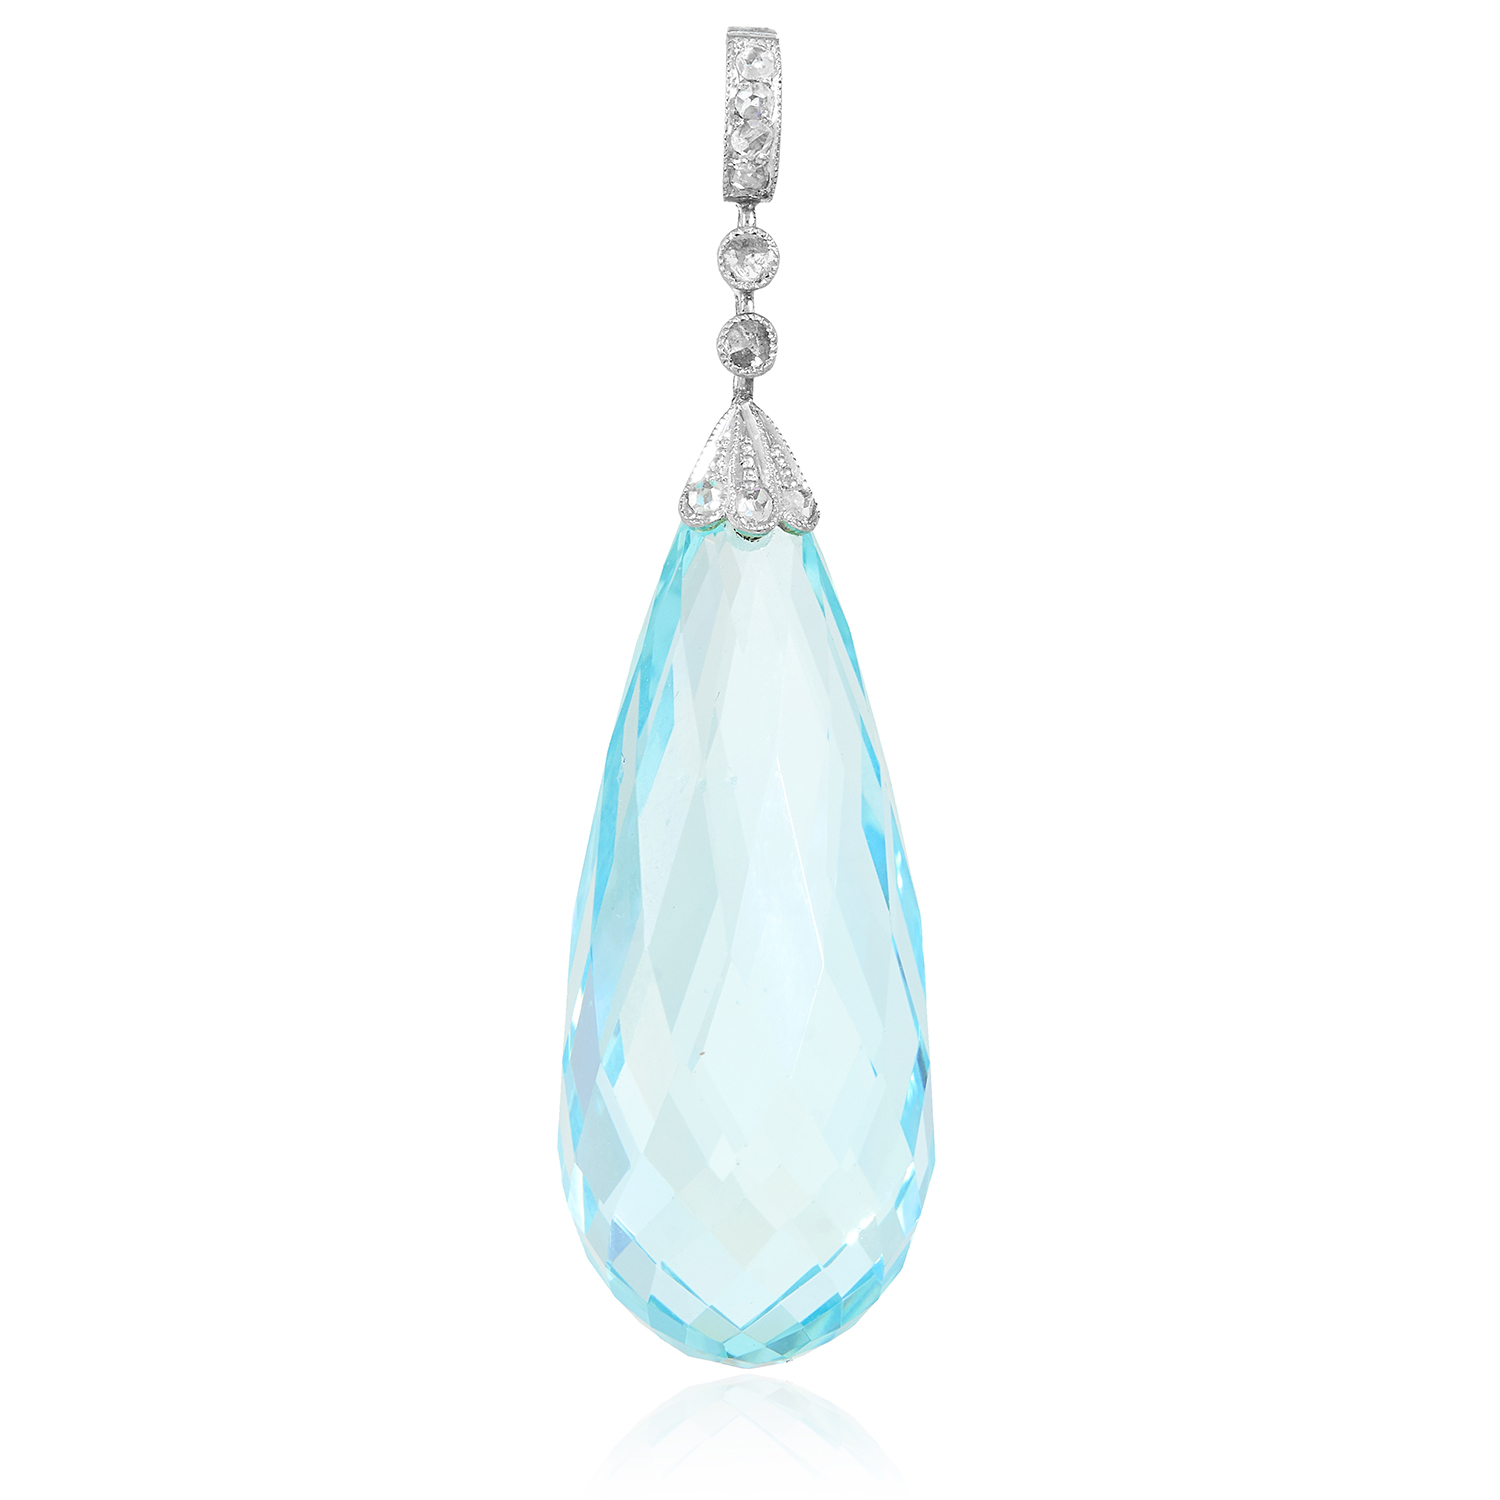 AN ANTIQUE AQUAMARINE AND DIAMOND PENDANT in yellow gold and silver, set with a tapering briolette